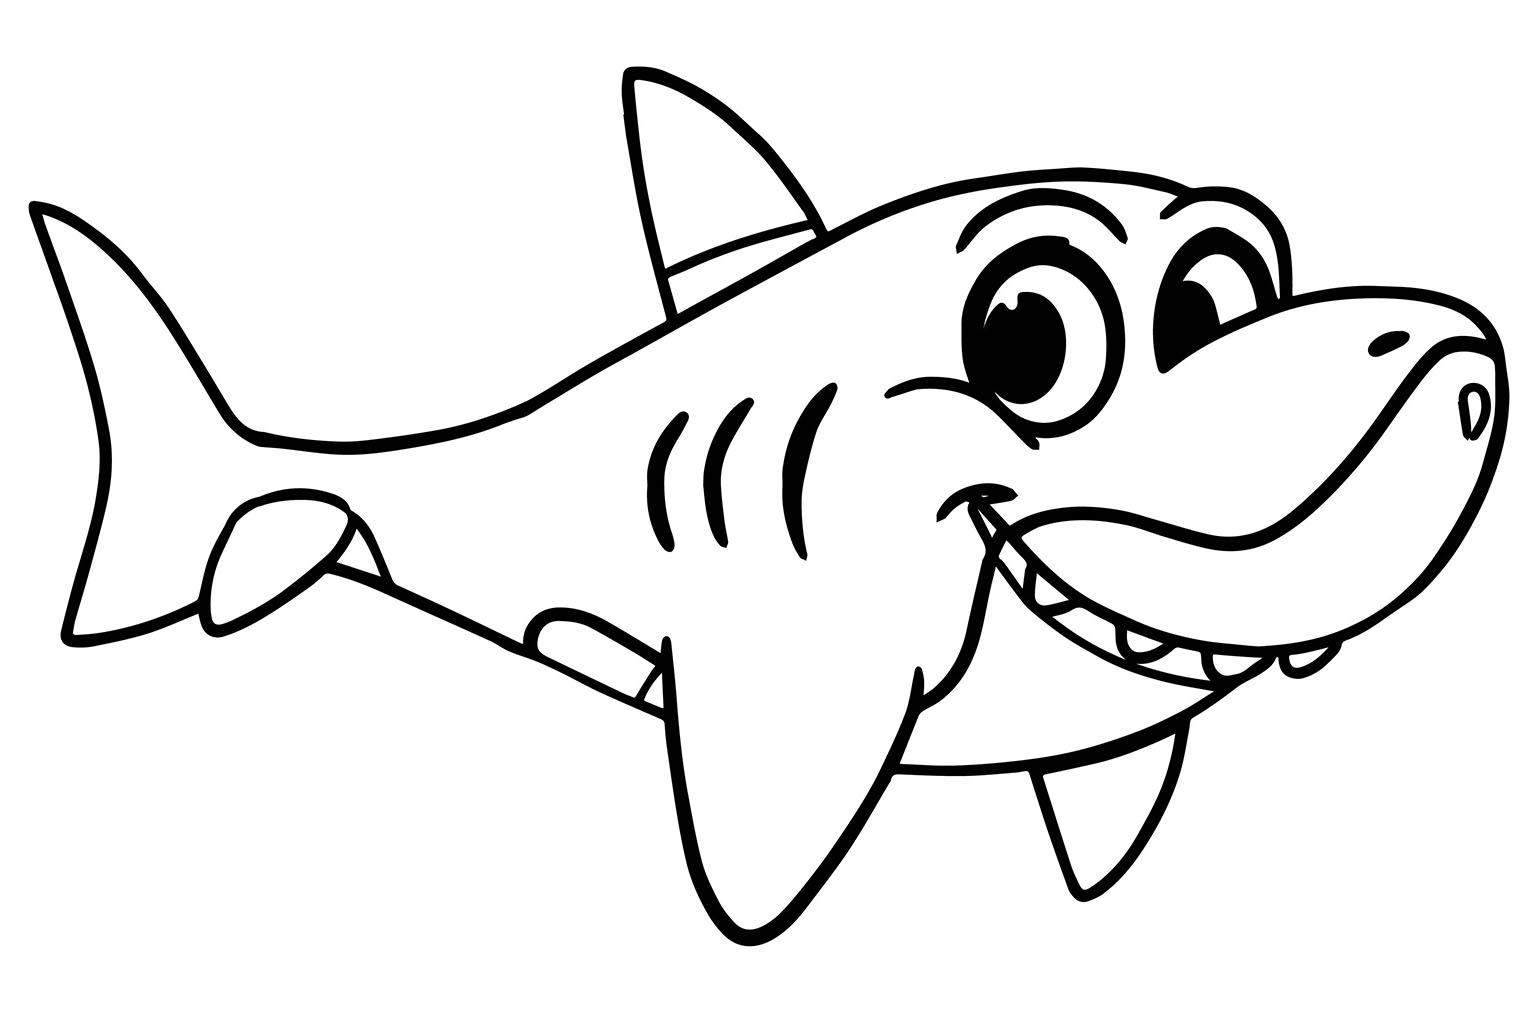 shark colouring picture free printable shark coloring pages for kids colouring picture shark